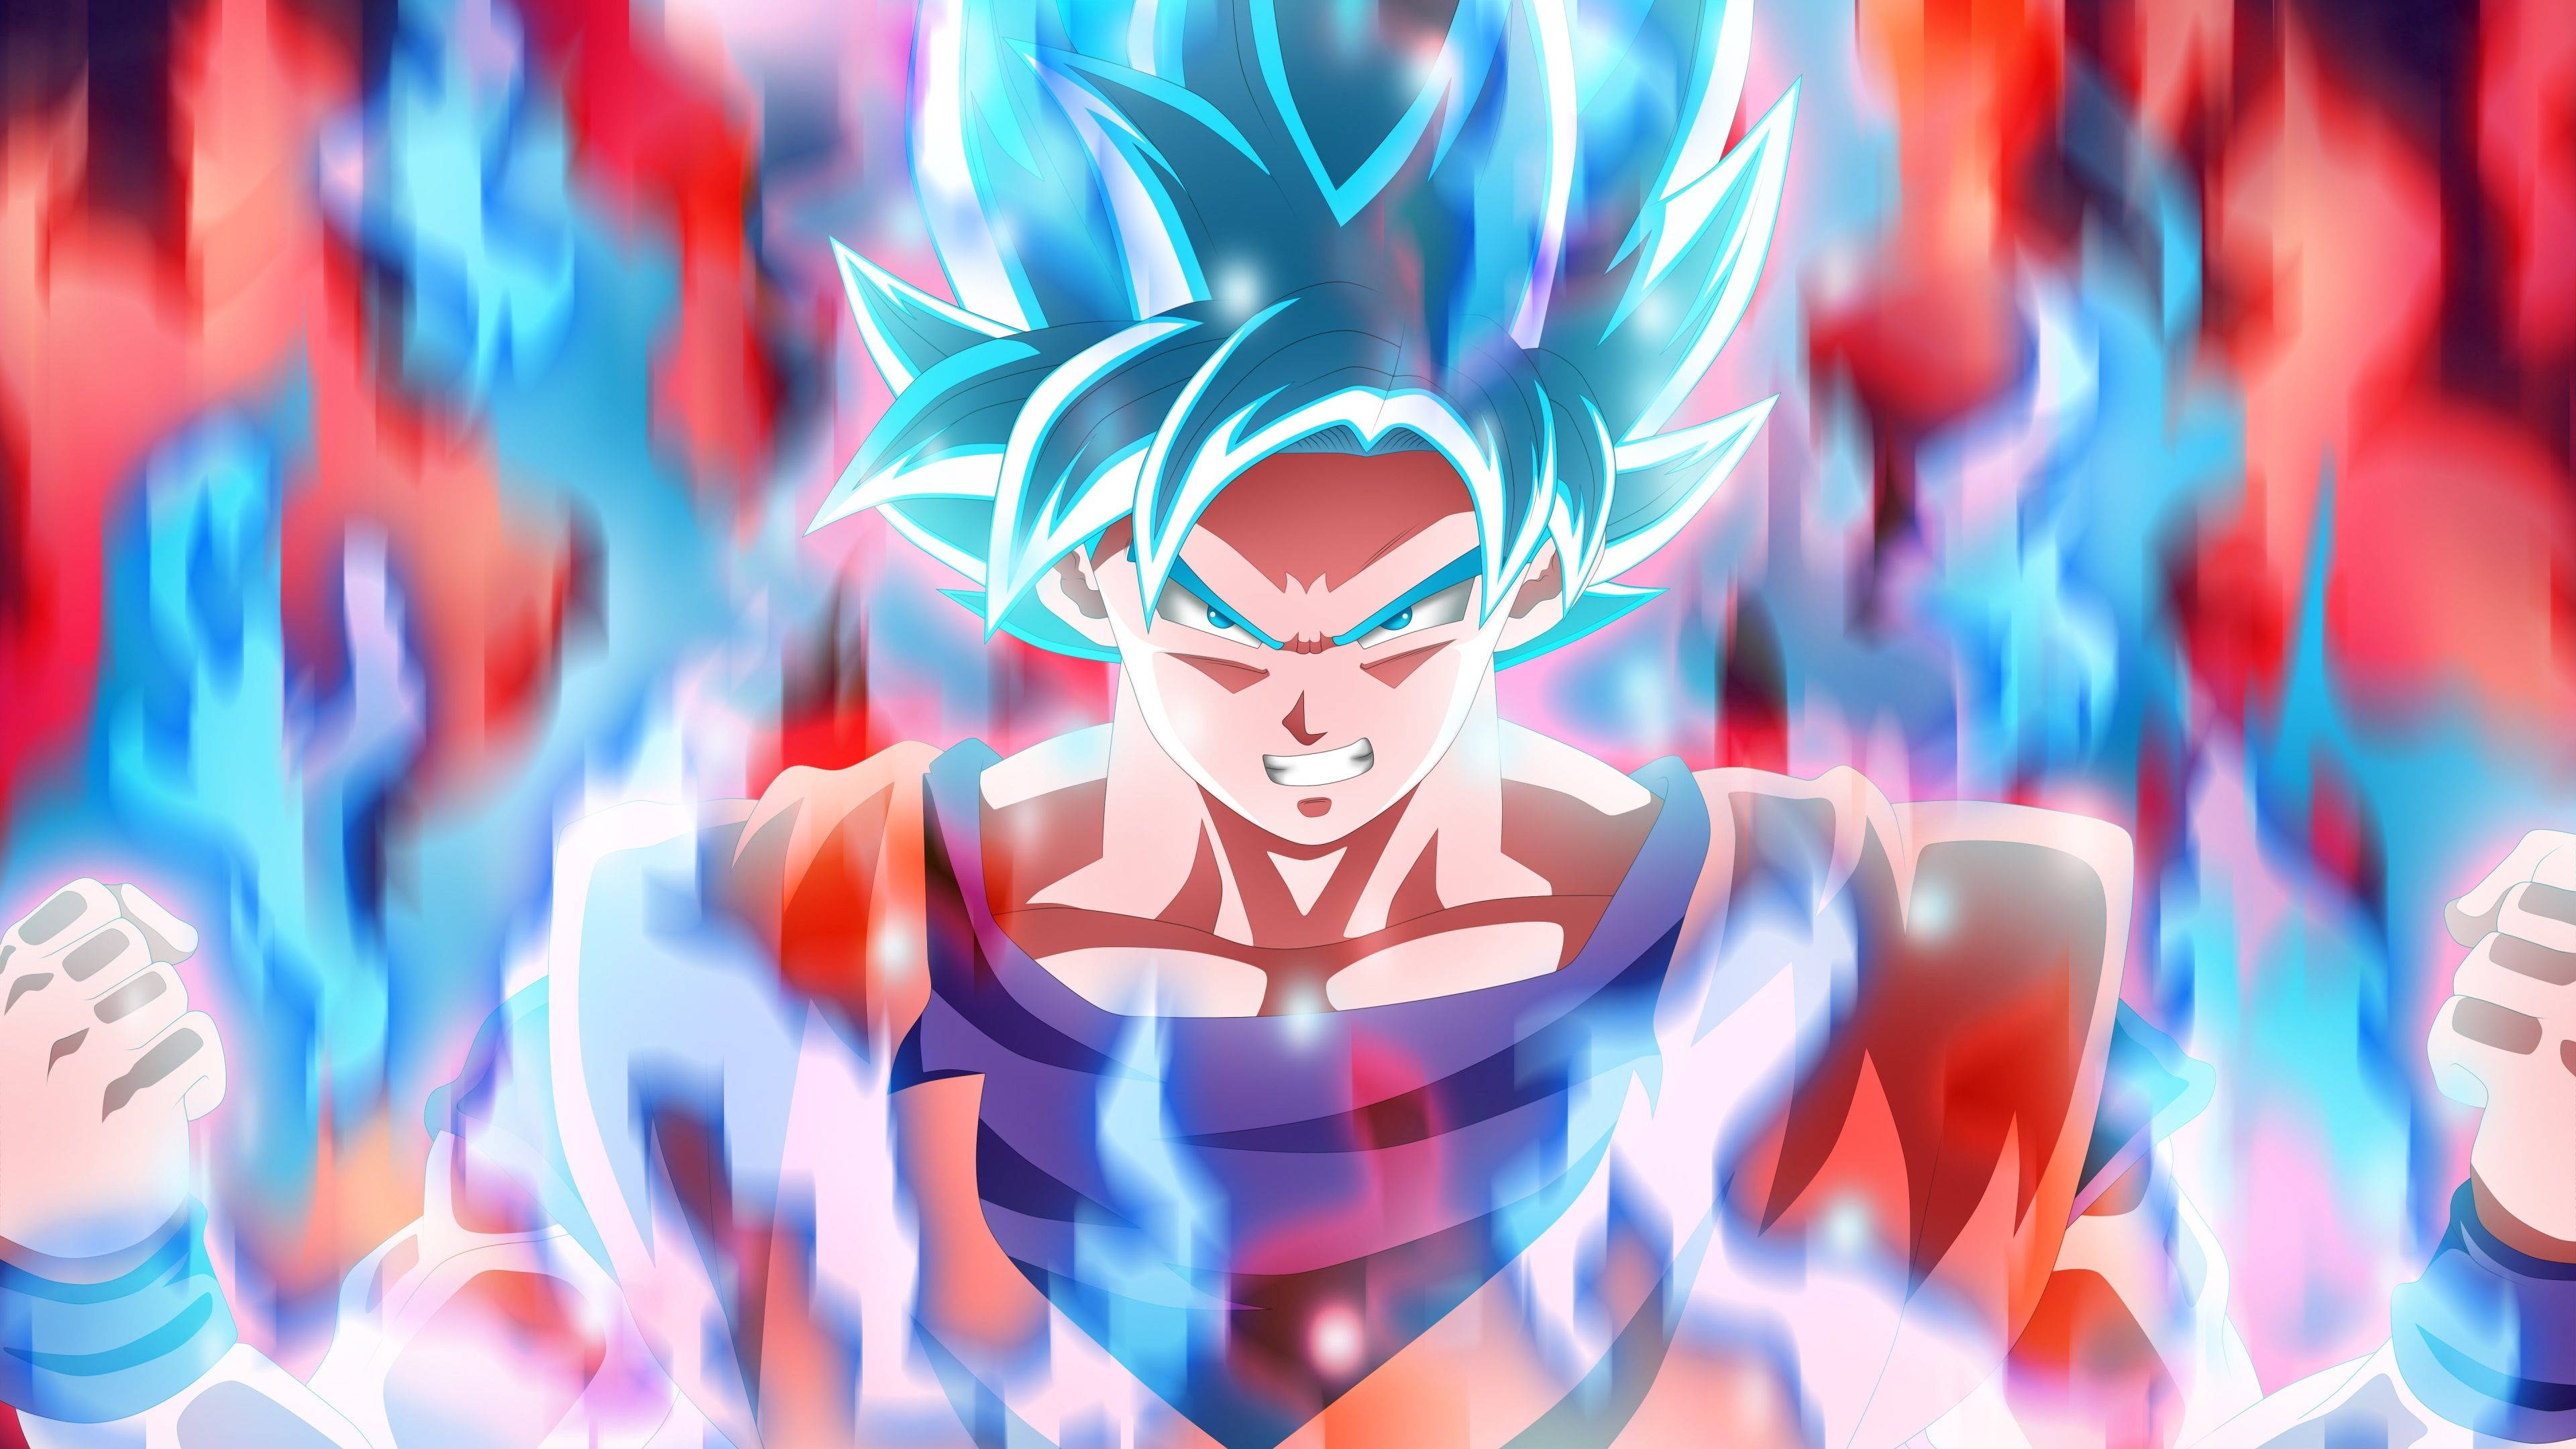 3840x2160 Goku 4k Best Wallpaper Hd Anime Dragon Ball Super Dragon Ball Wallpapers Goku Wallpaper